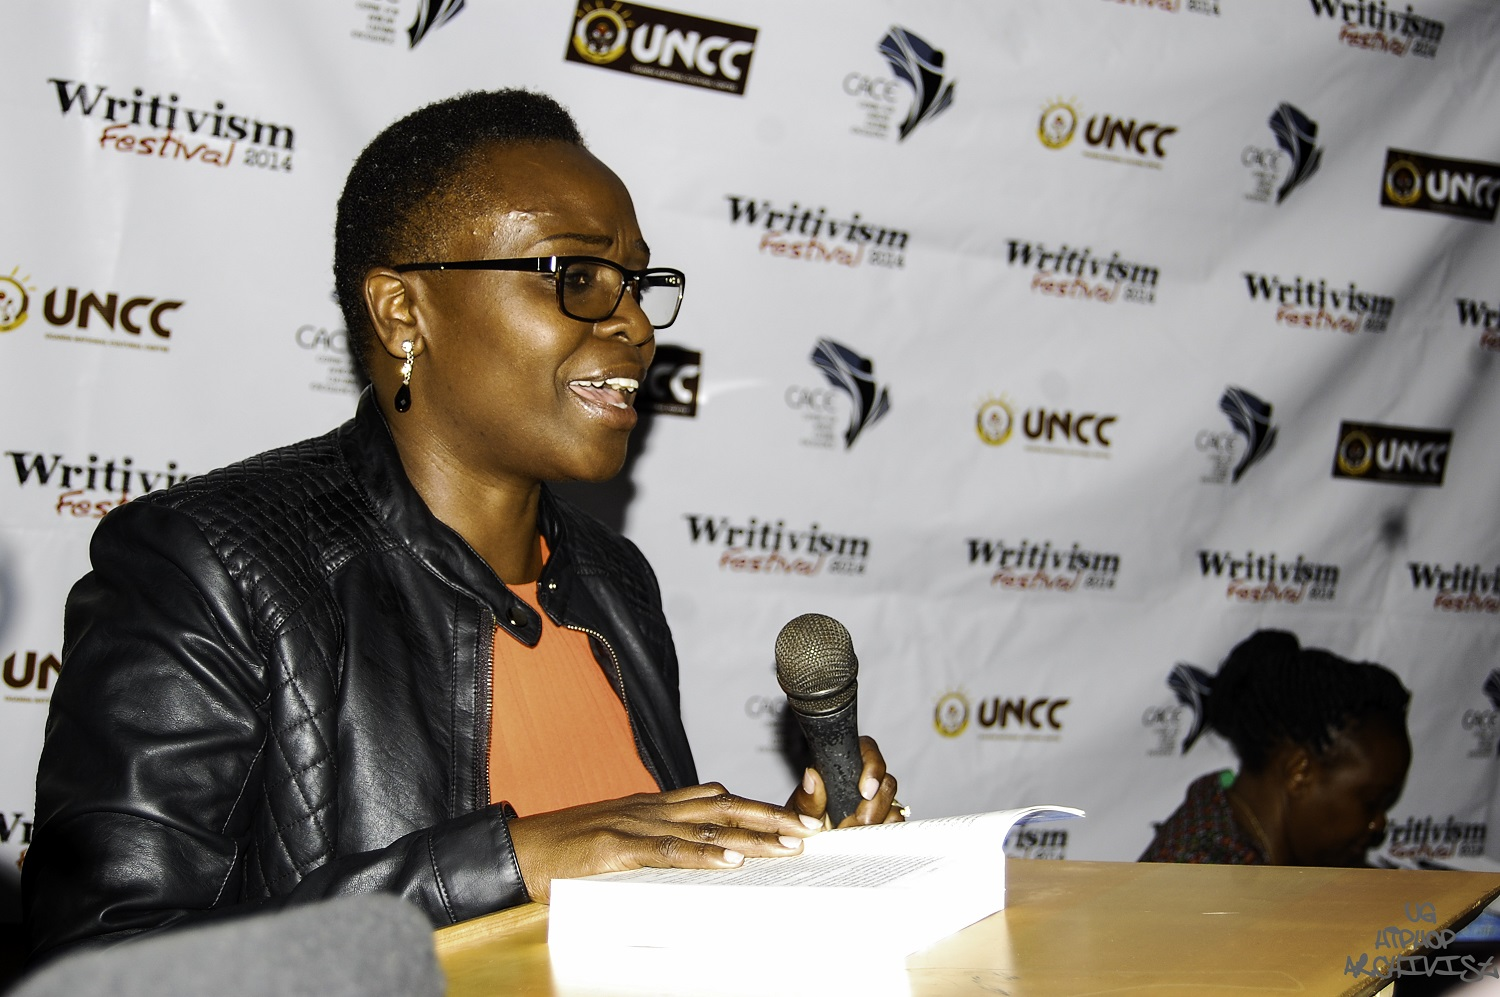 Jennifer-Makumbi-reads-from-the-book-at-its-launch